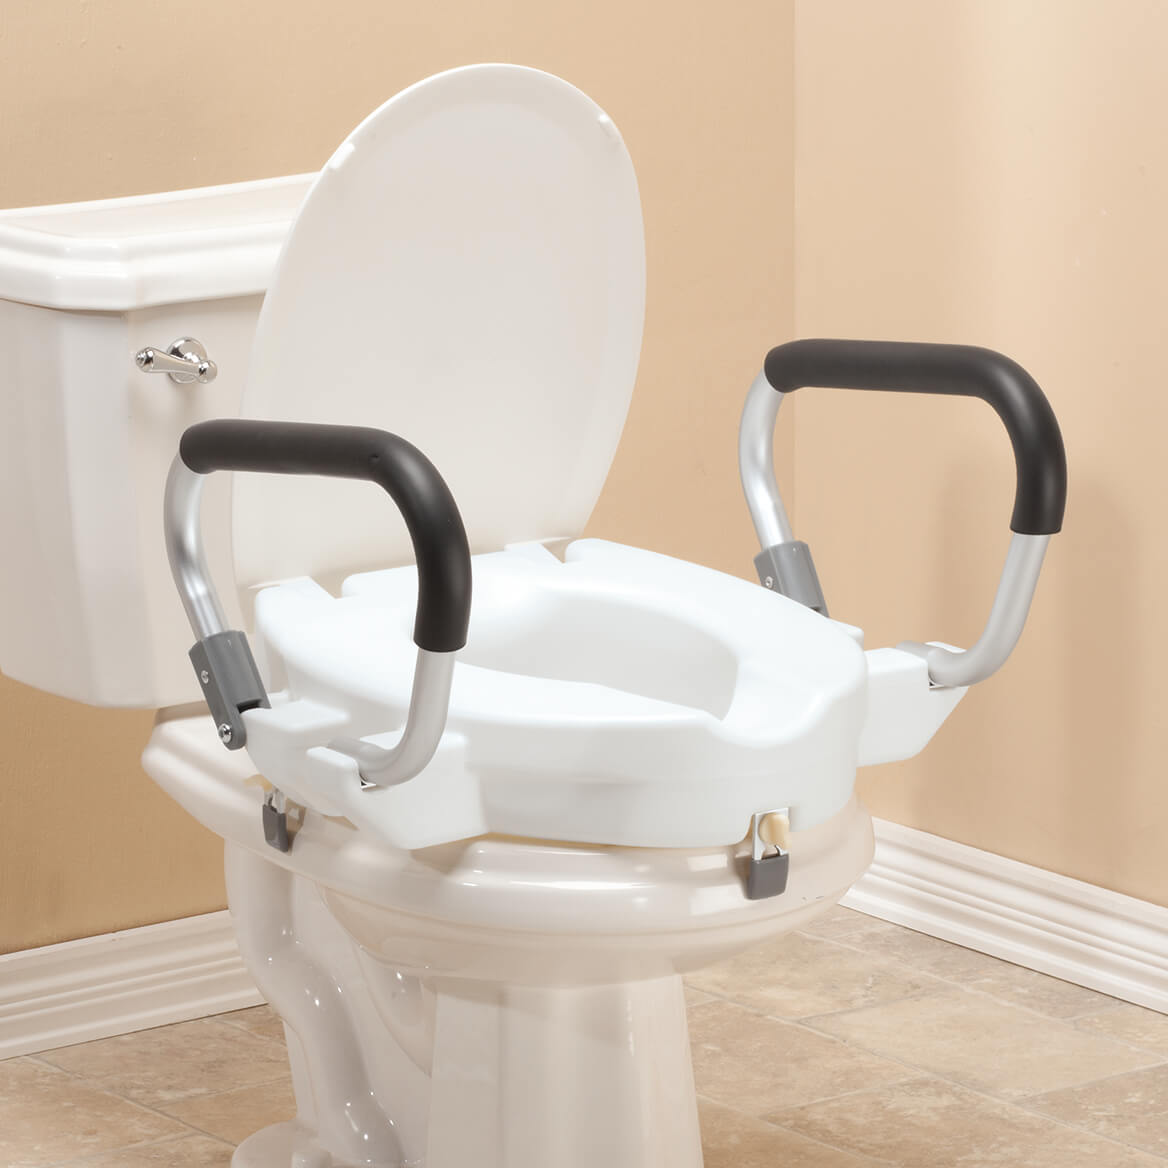 "4"" Toilet Seat with Arms and Lid           XL-357861"